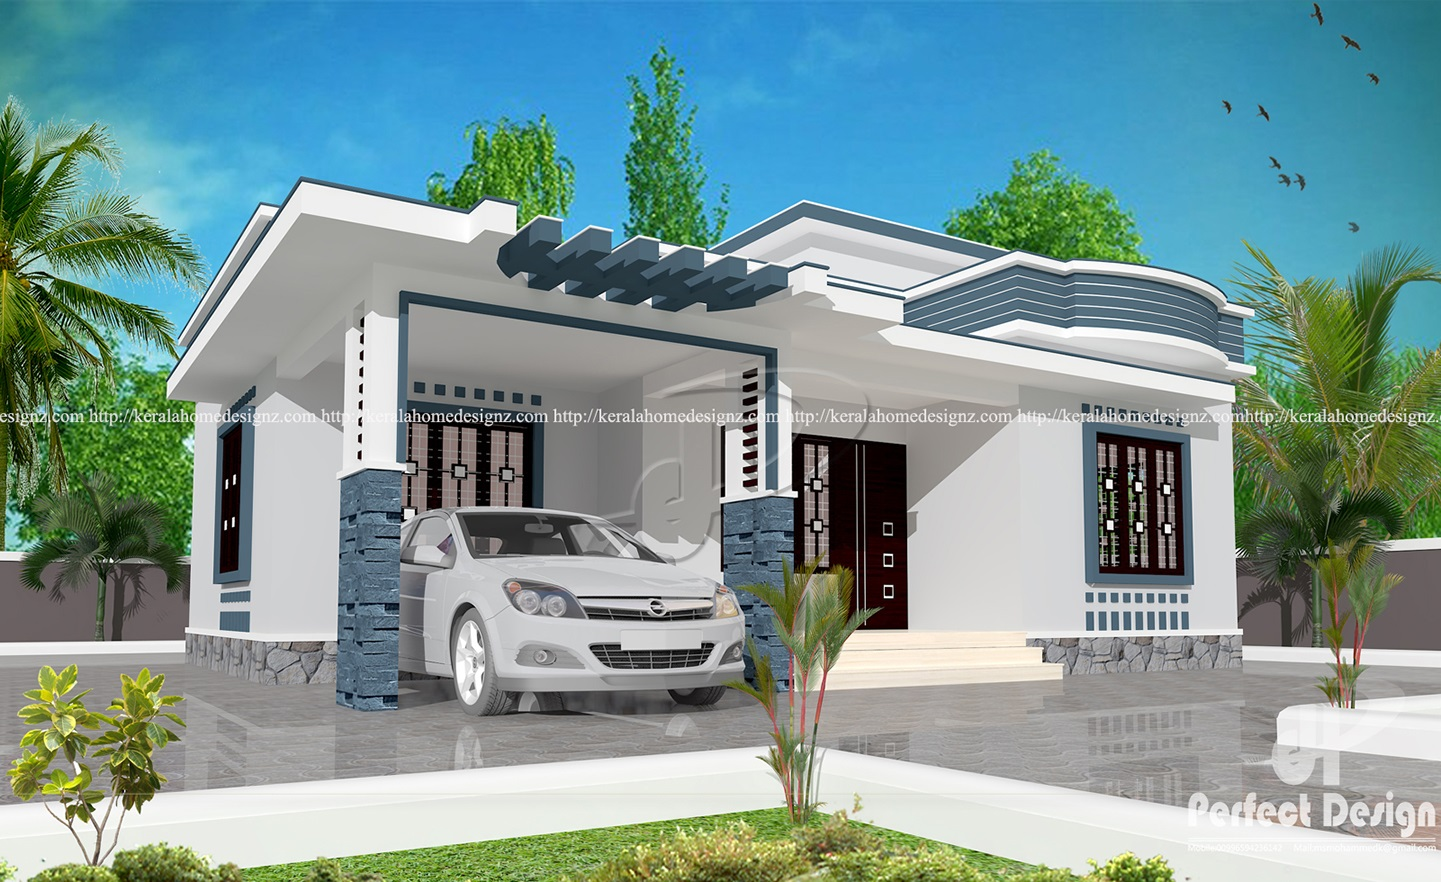 10 lakhs cost estimated modern home kerala home design for 2 bhk house designs in india